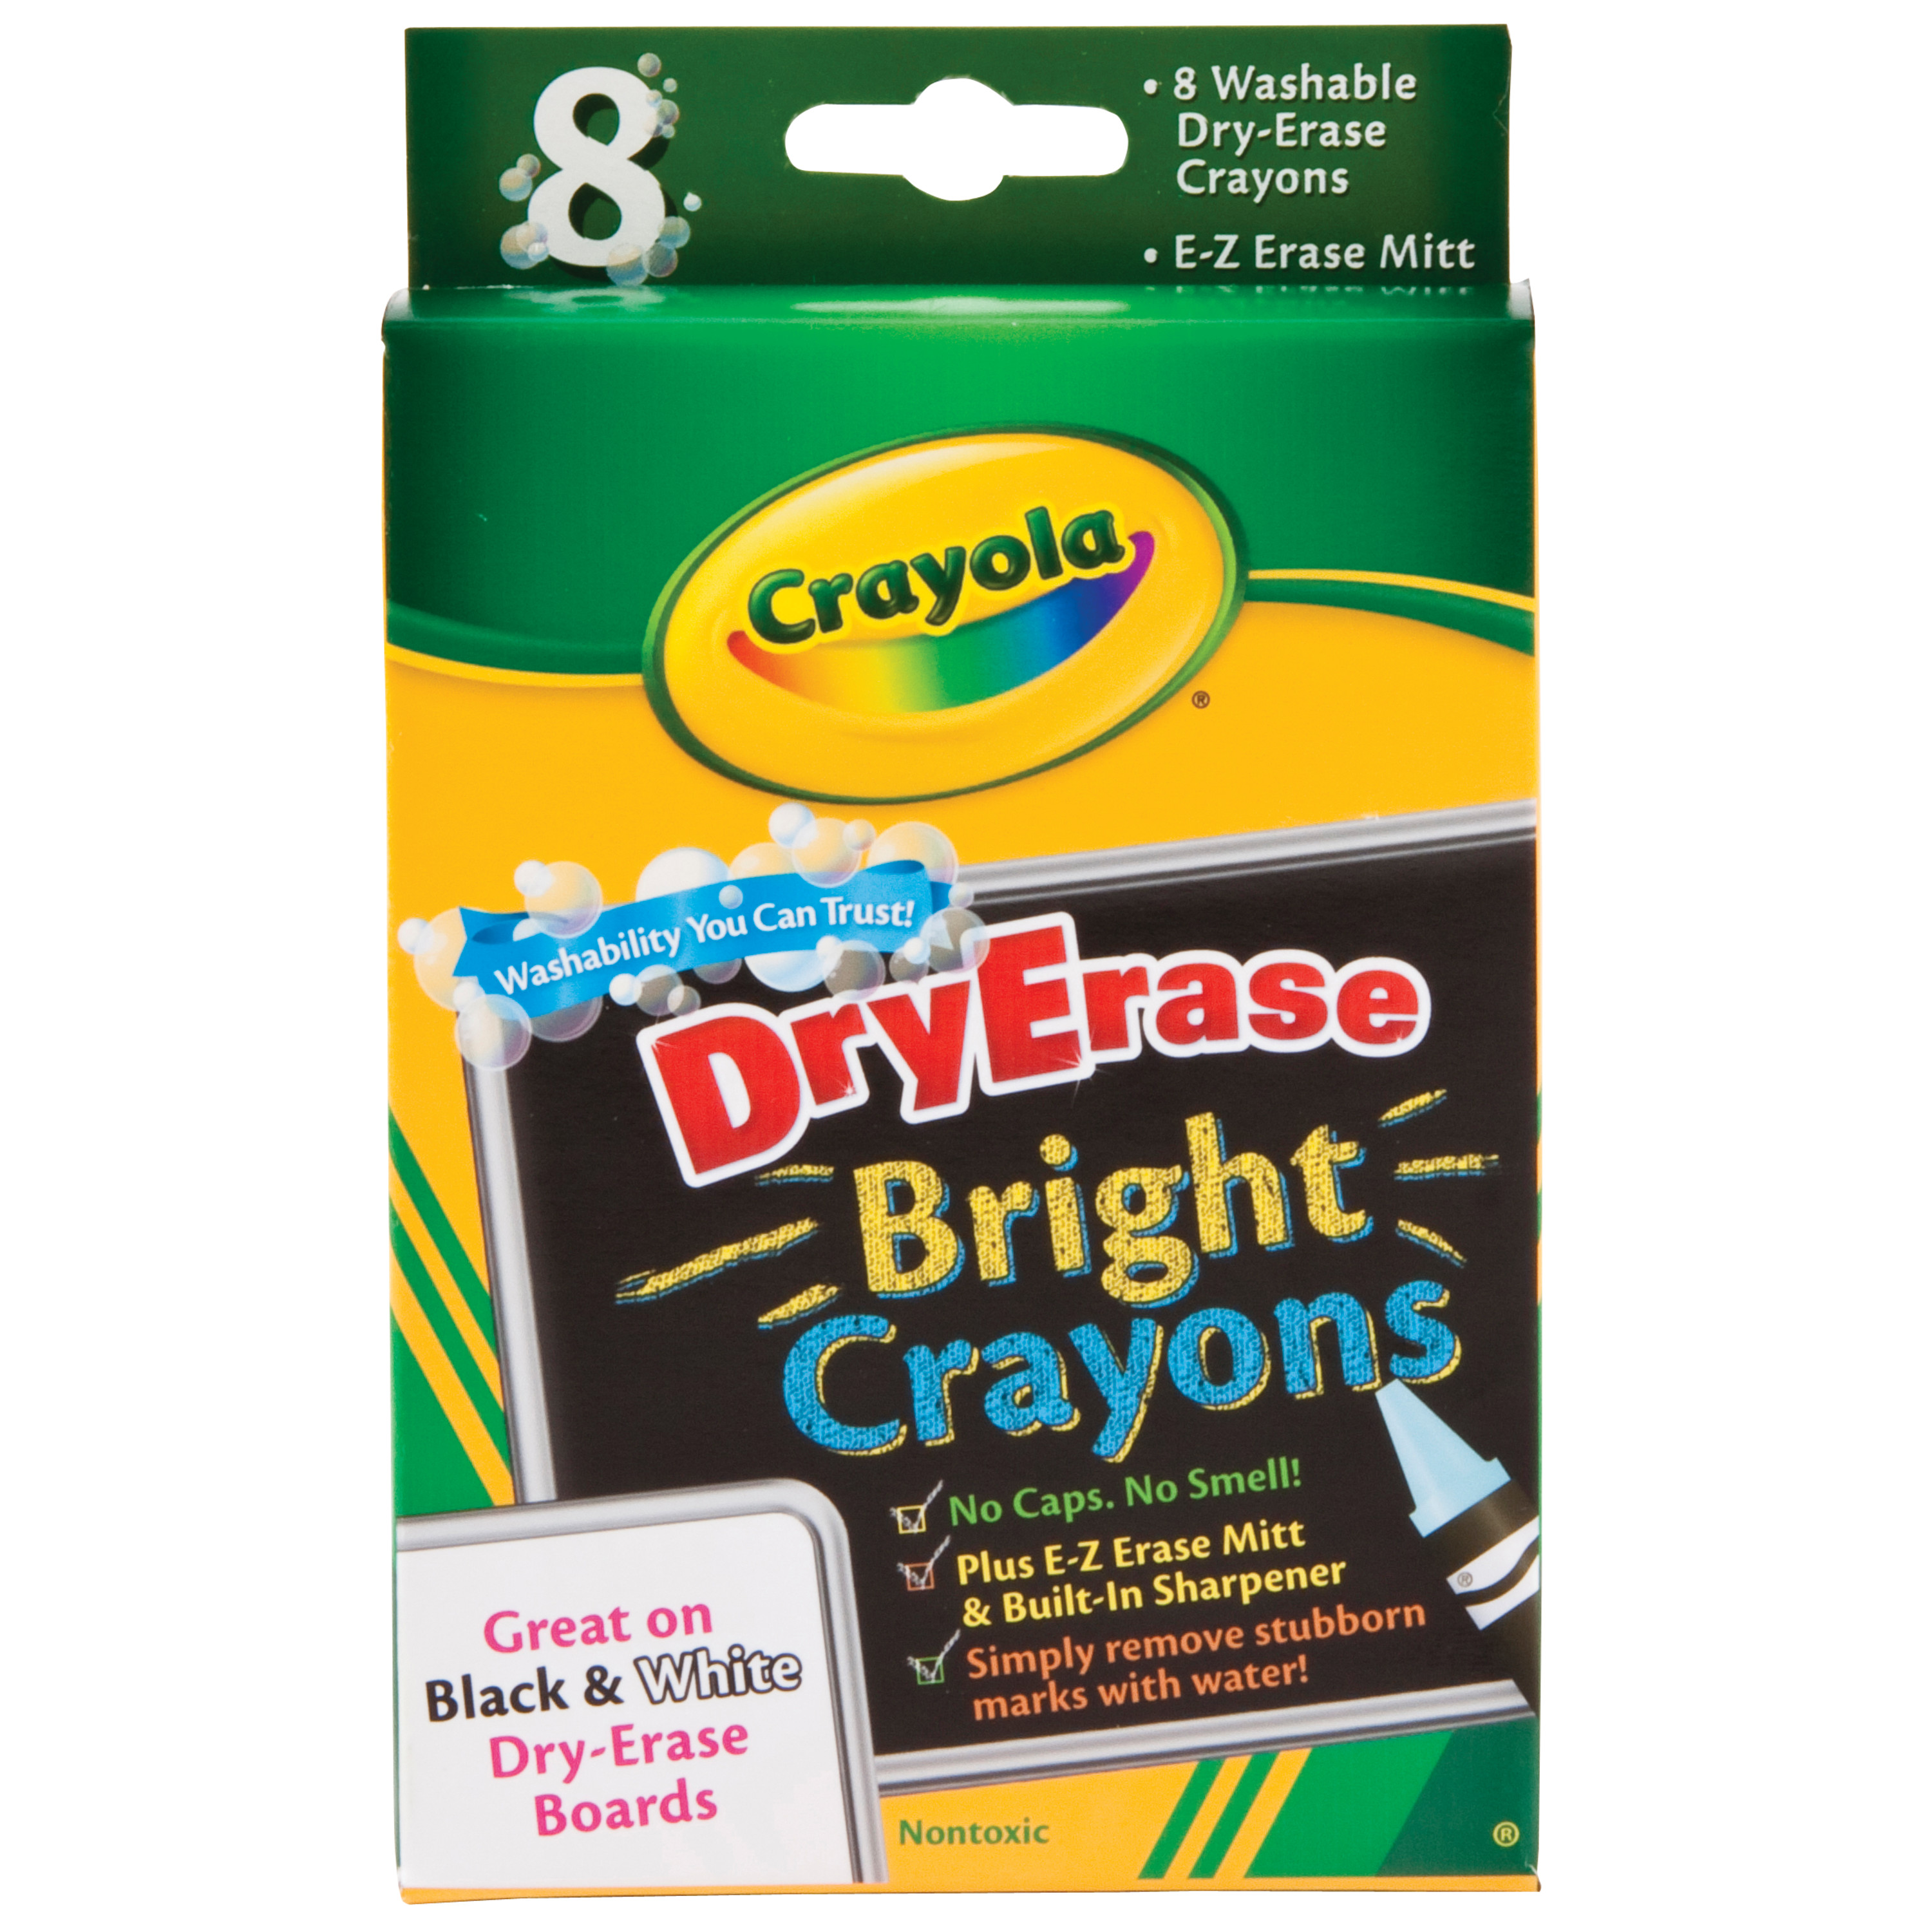 Crayola Washable Dry-Erase Crayon Set, 8 Colors, Brights